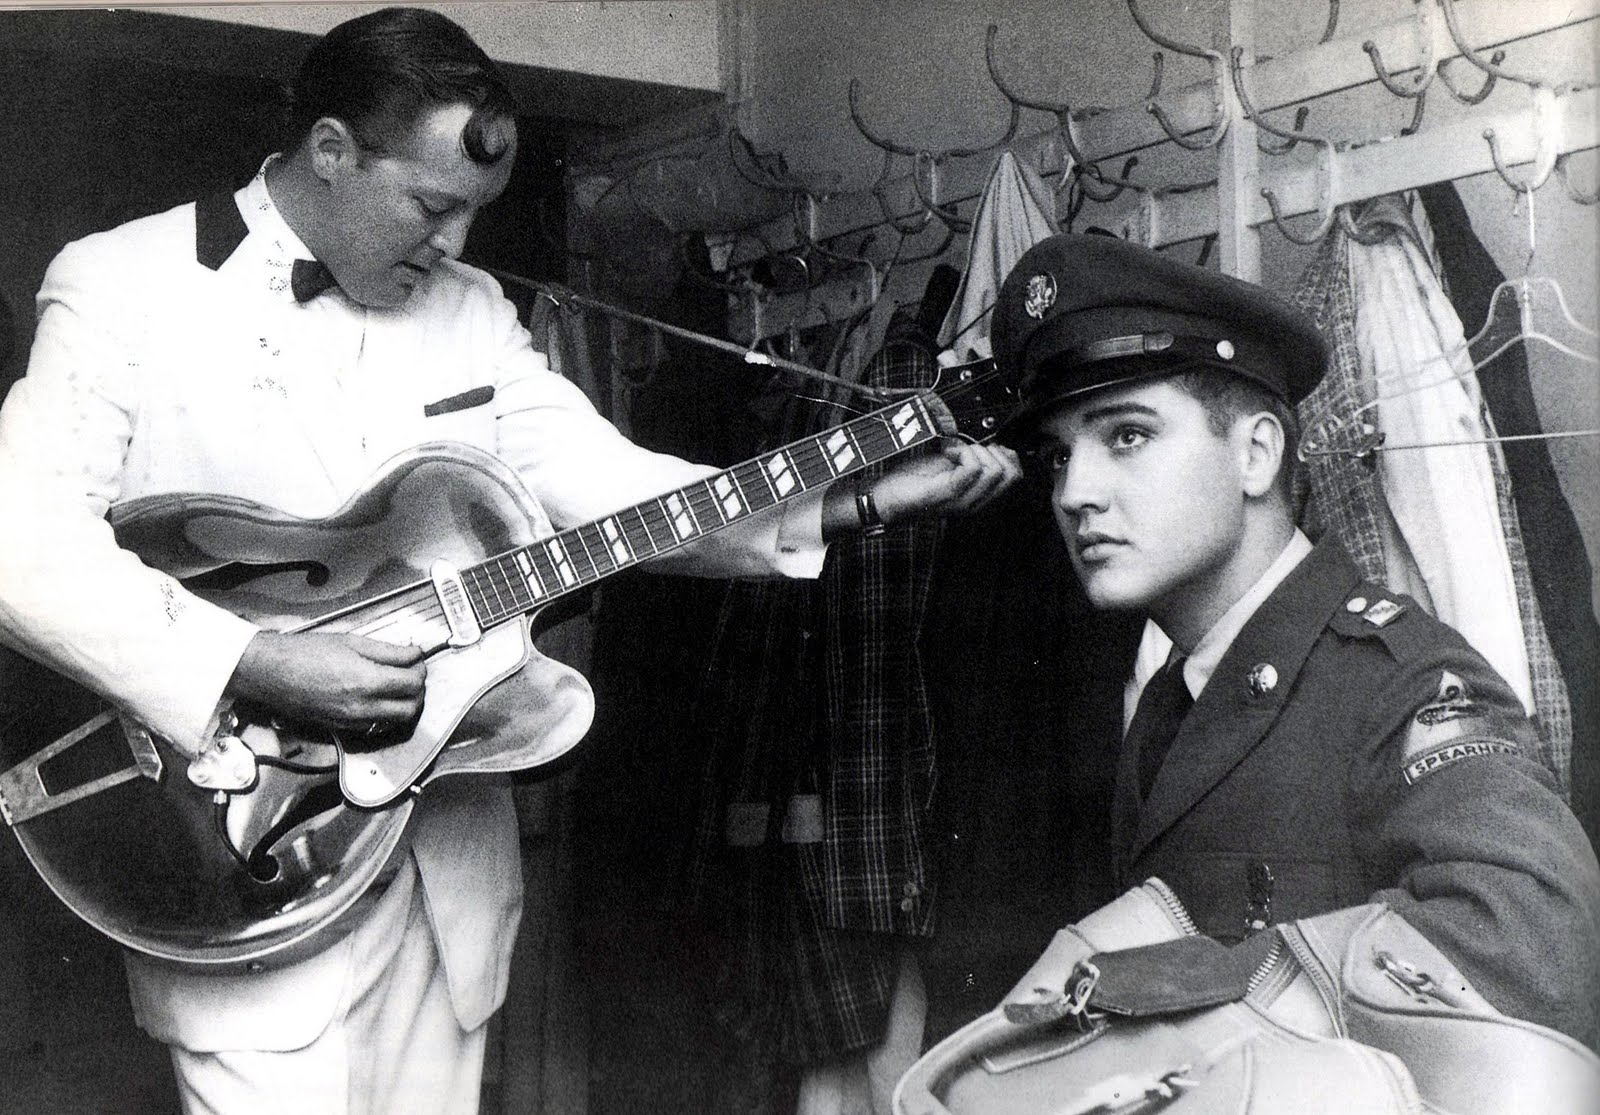 Bill Haley and Elvis Presley backstage in Germany, 1957